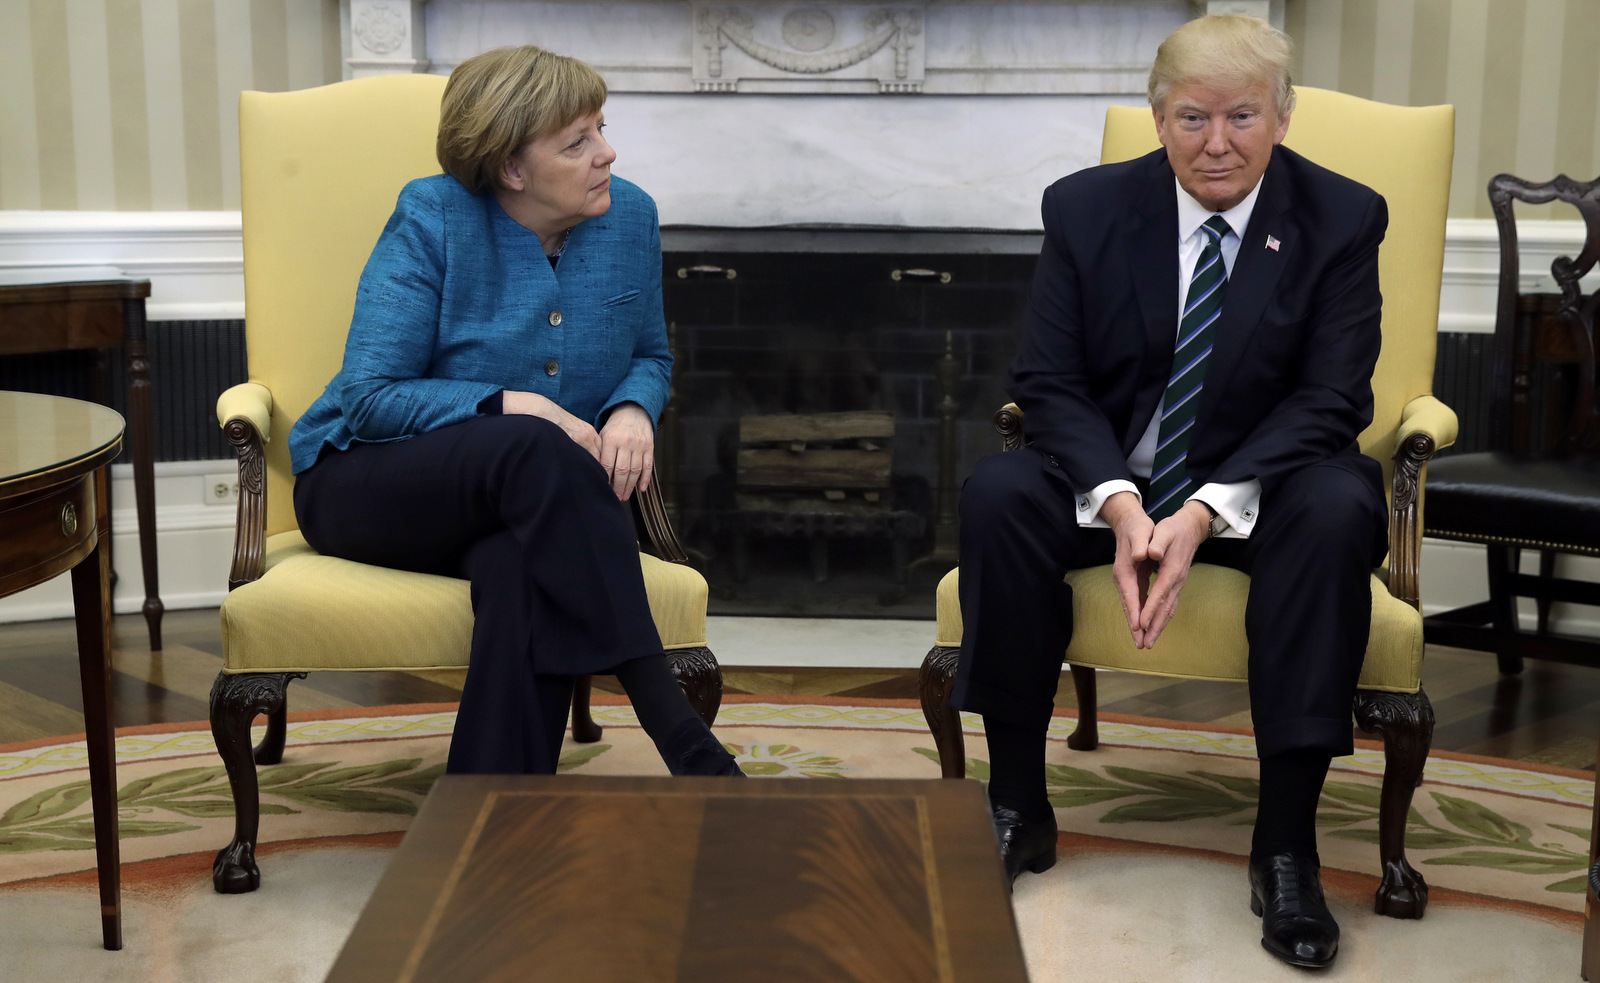 President Donald Trump meets with German Chancellor Angela Merkel in the Oval Office of the White House in Washington, Friday, March 17, 2017. (AP/Evan Vucci)